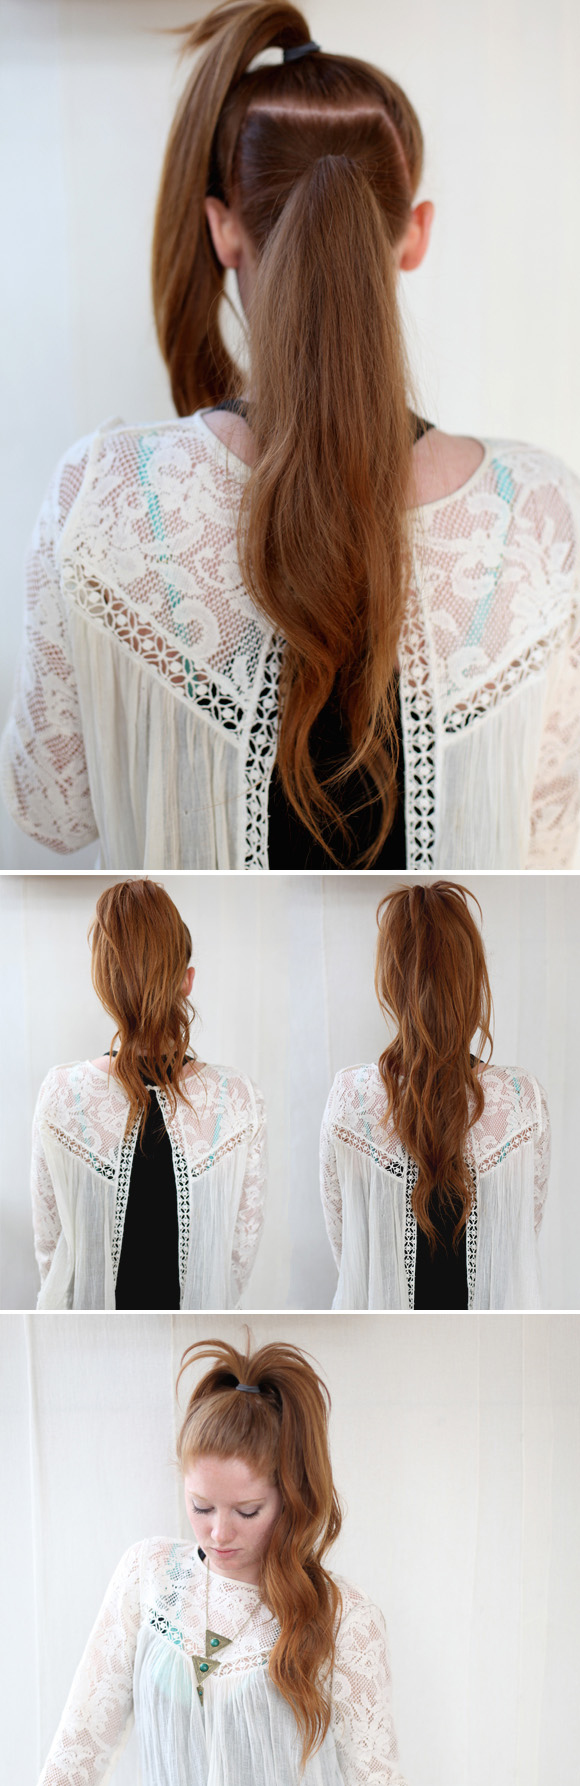 Groovy 23 Five Minute Hairstyles For Busy Mornings Hairstyle Inspiration Daily Dogsangcom